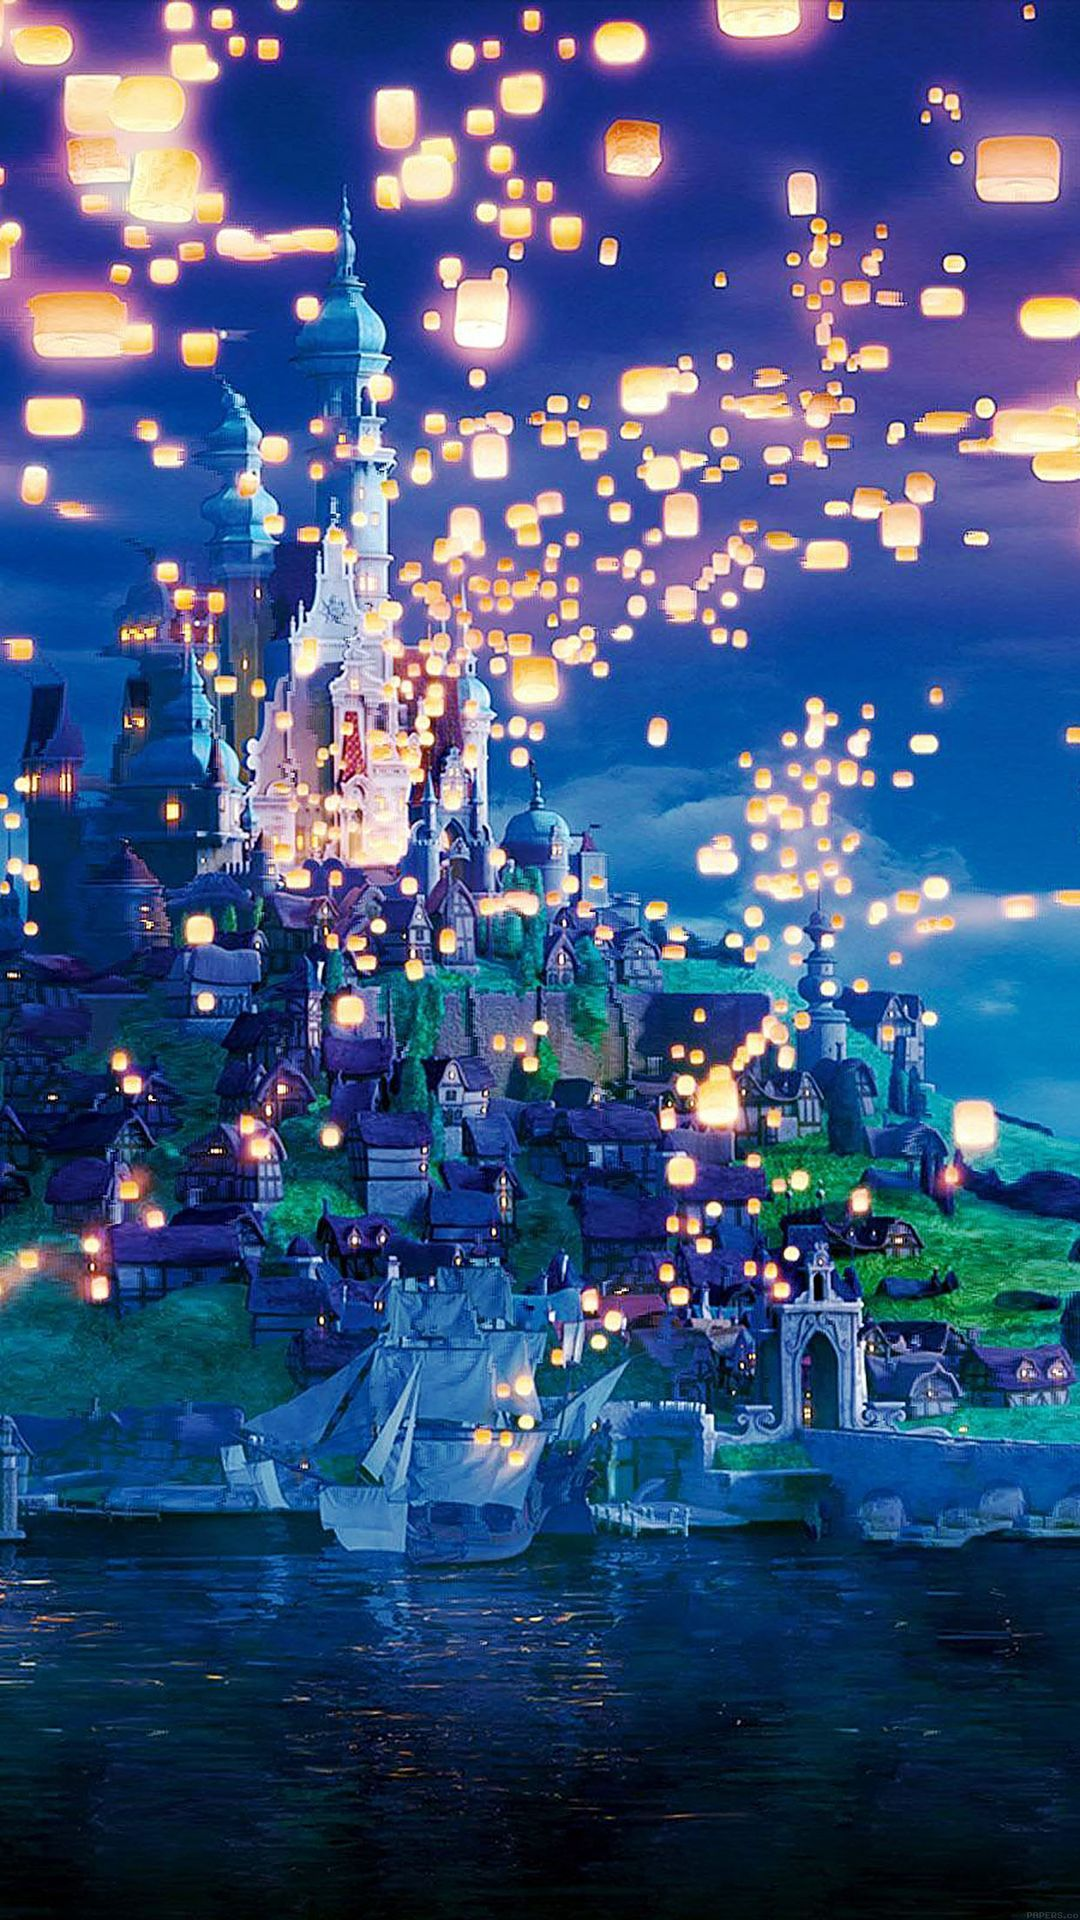 Tap image for more iPhone Disney wallpapers! Rapunzel dreams - @mobile9 | Wallpaper for iPhone 5 ...